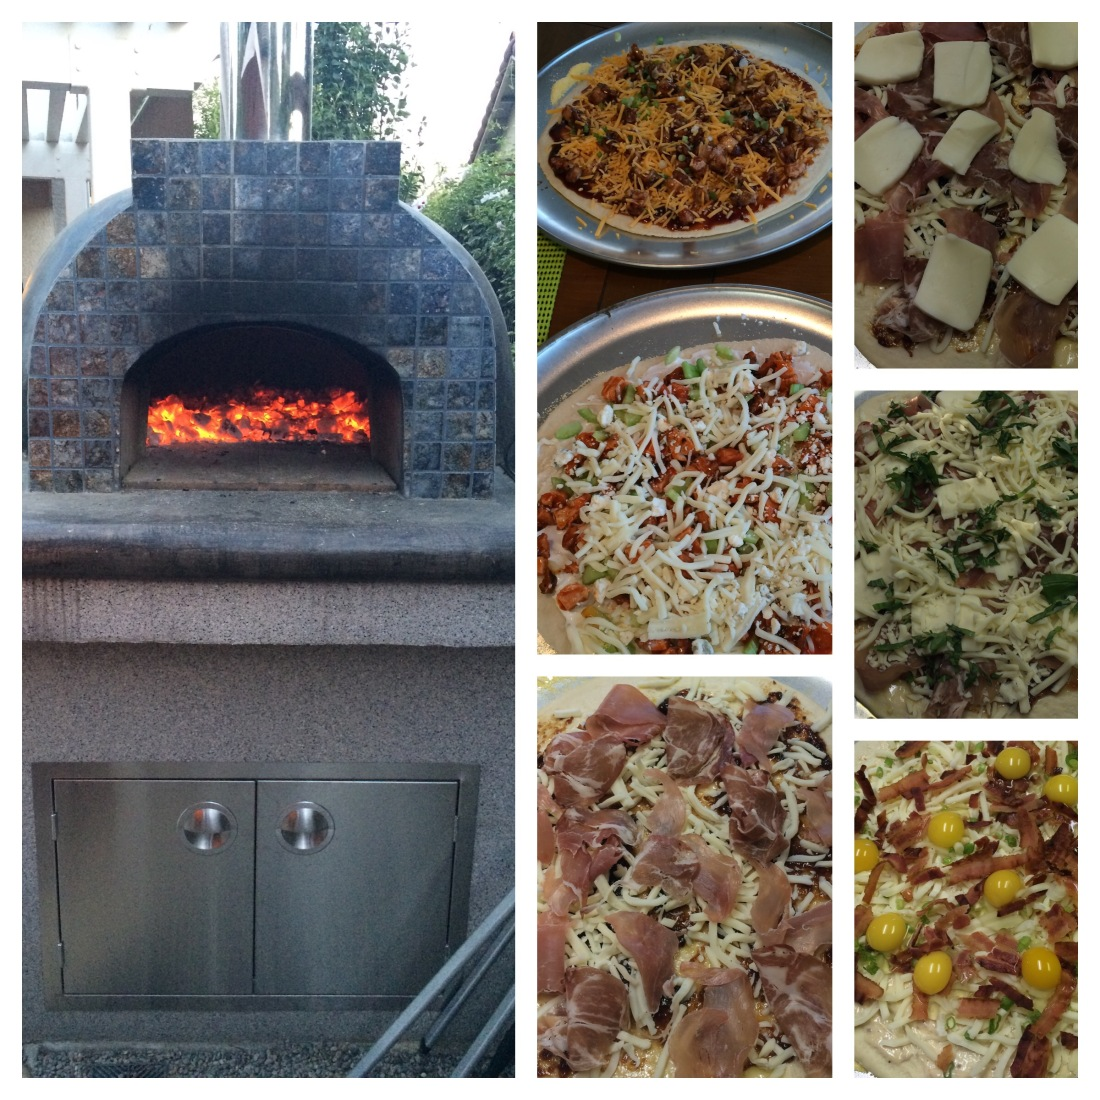 Collage of photos shows brick oven along with variety of pizzas